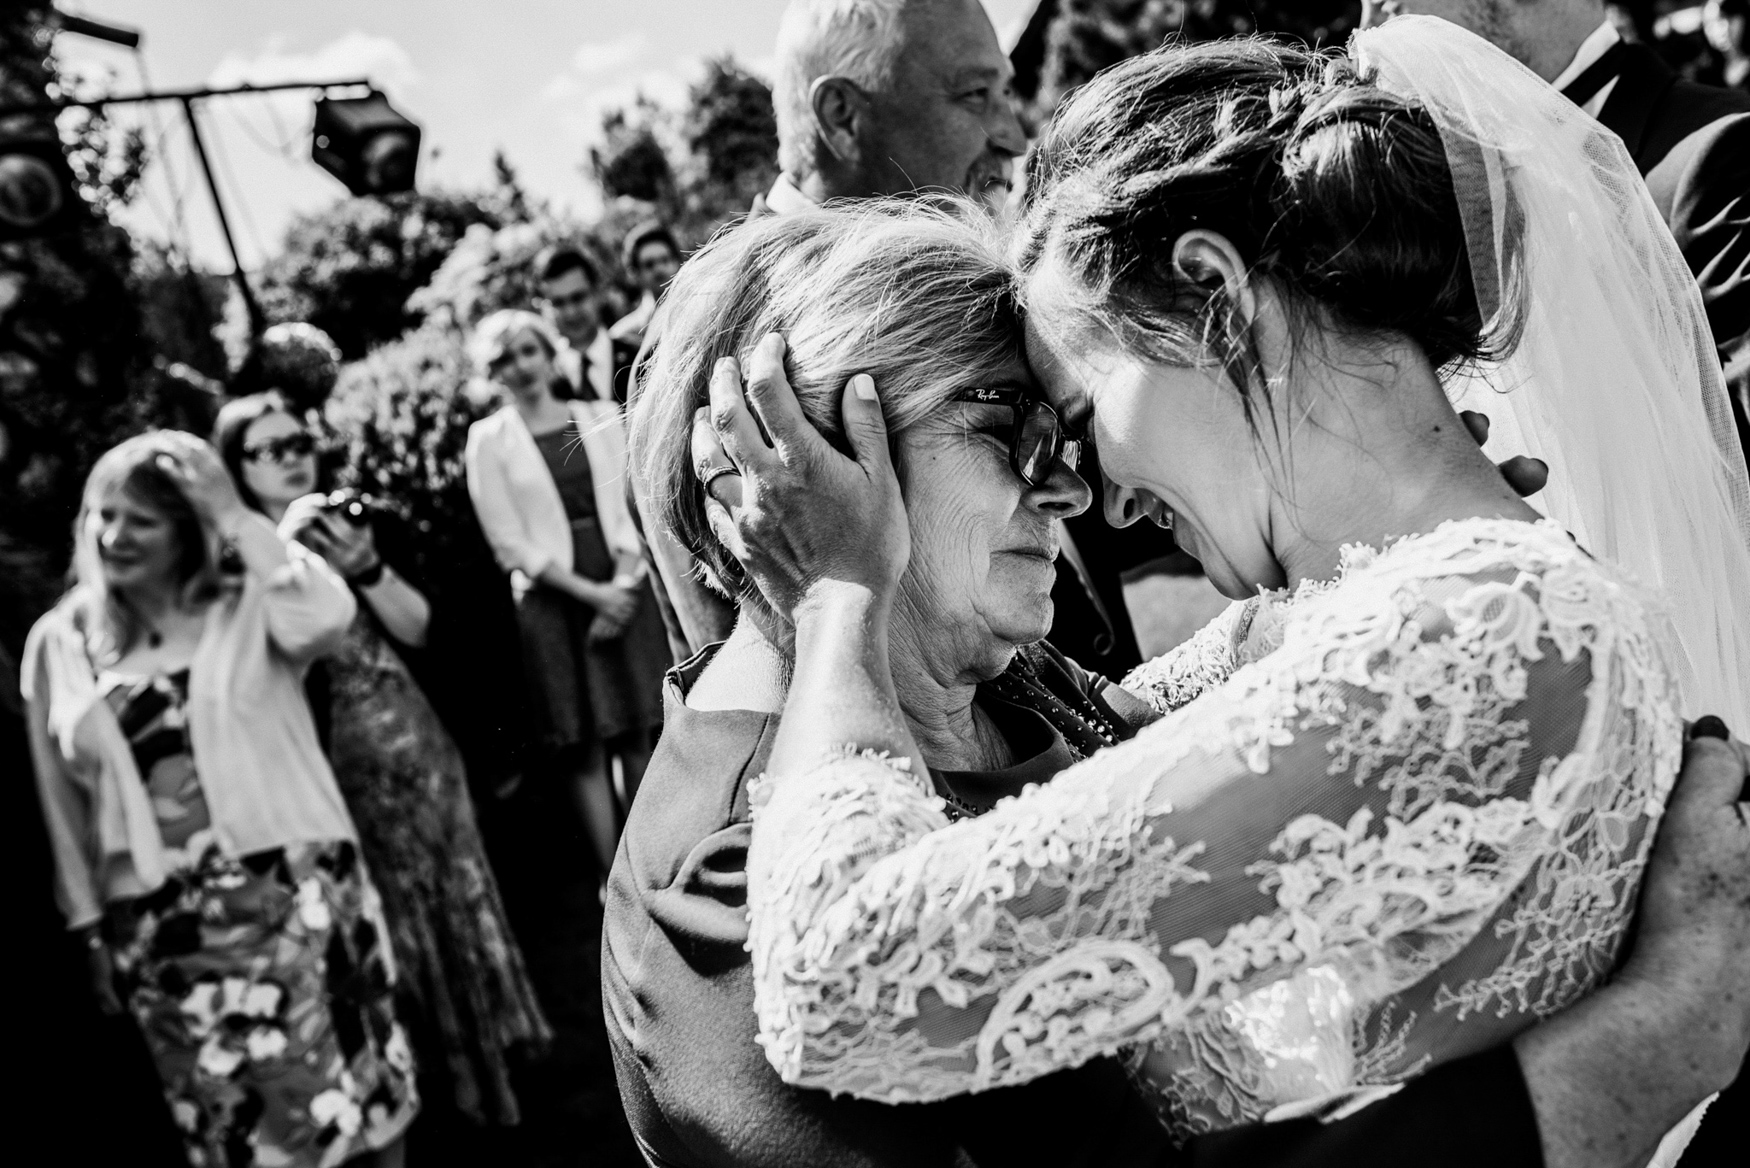 bestof2017_031 documentary wedding photographer.jpg